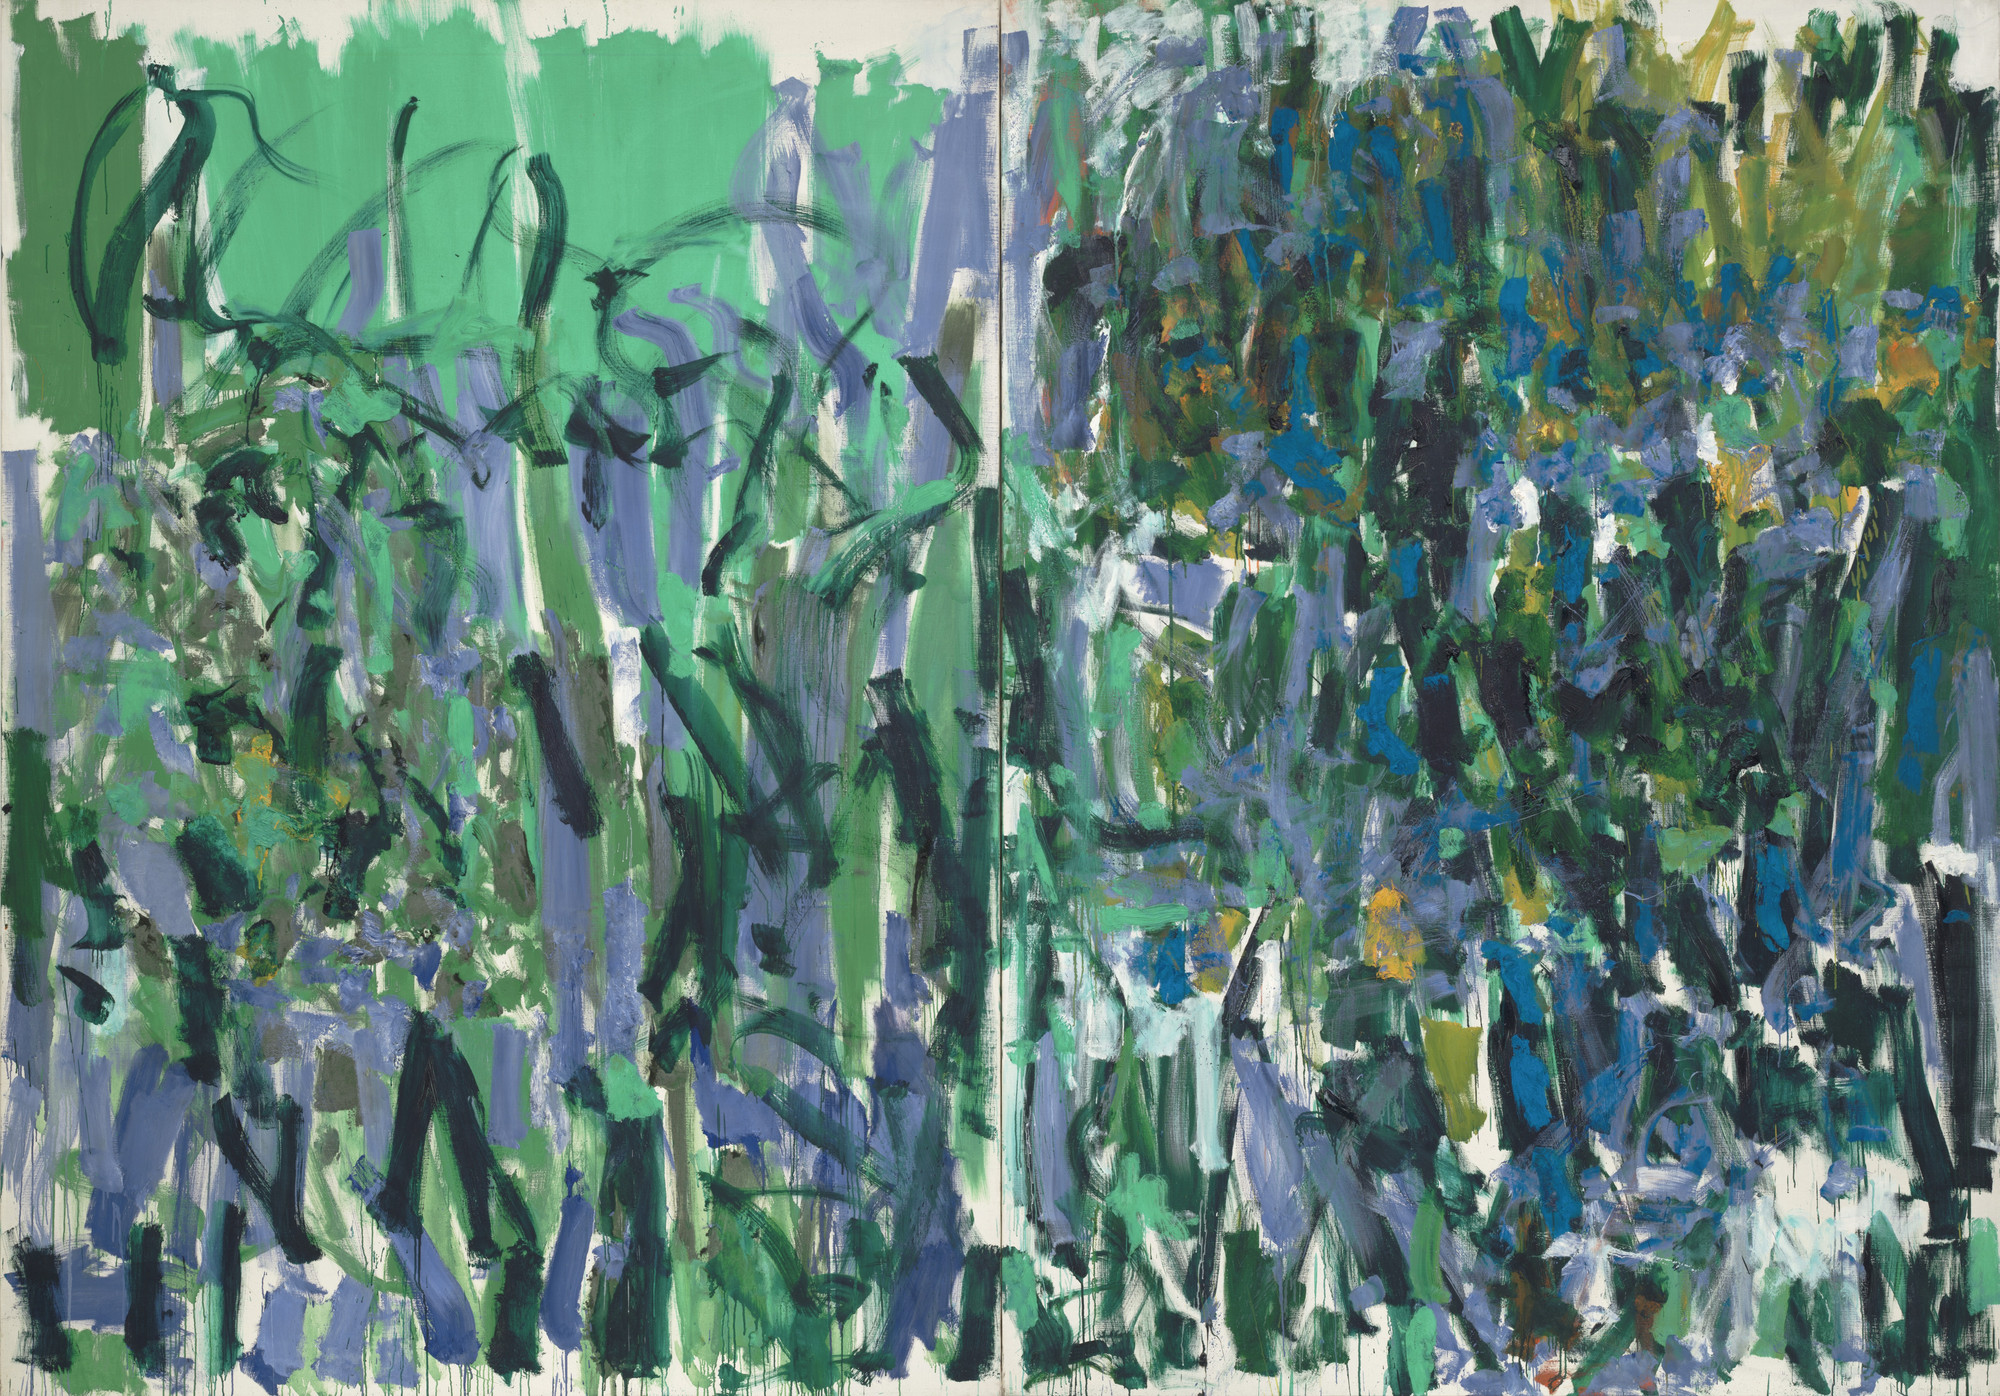 Joan Mitchell. No Rain. 1976